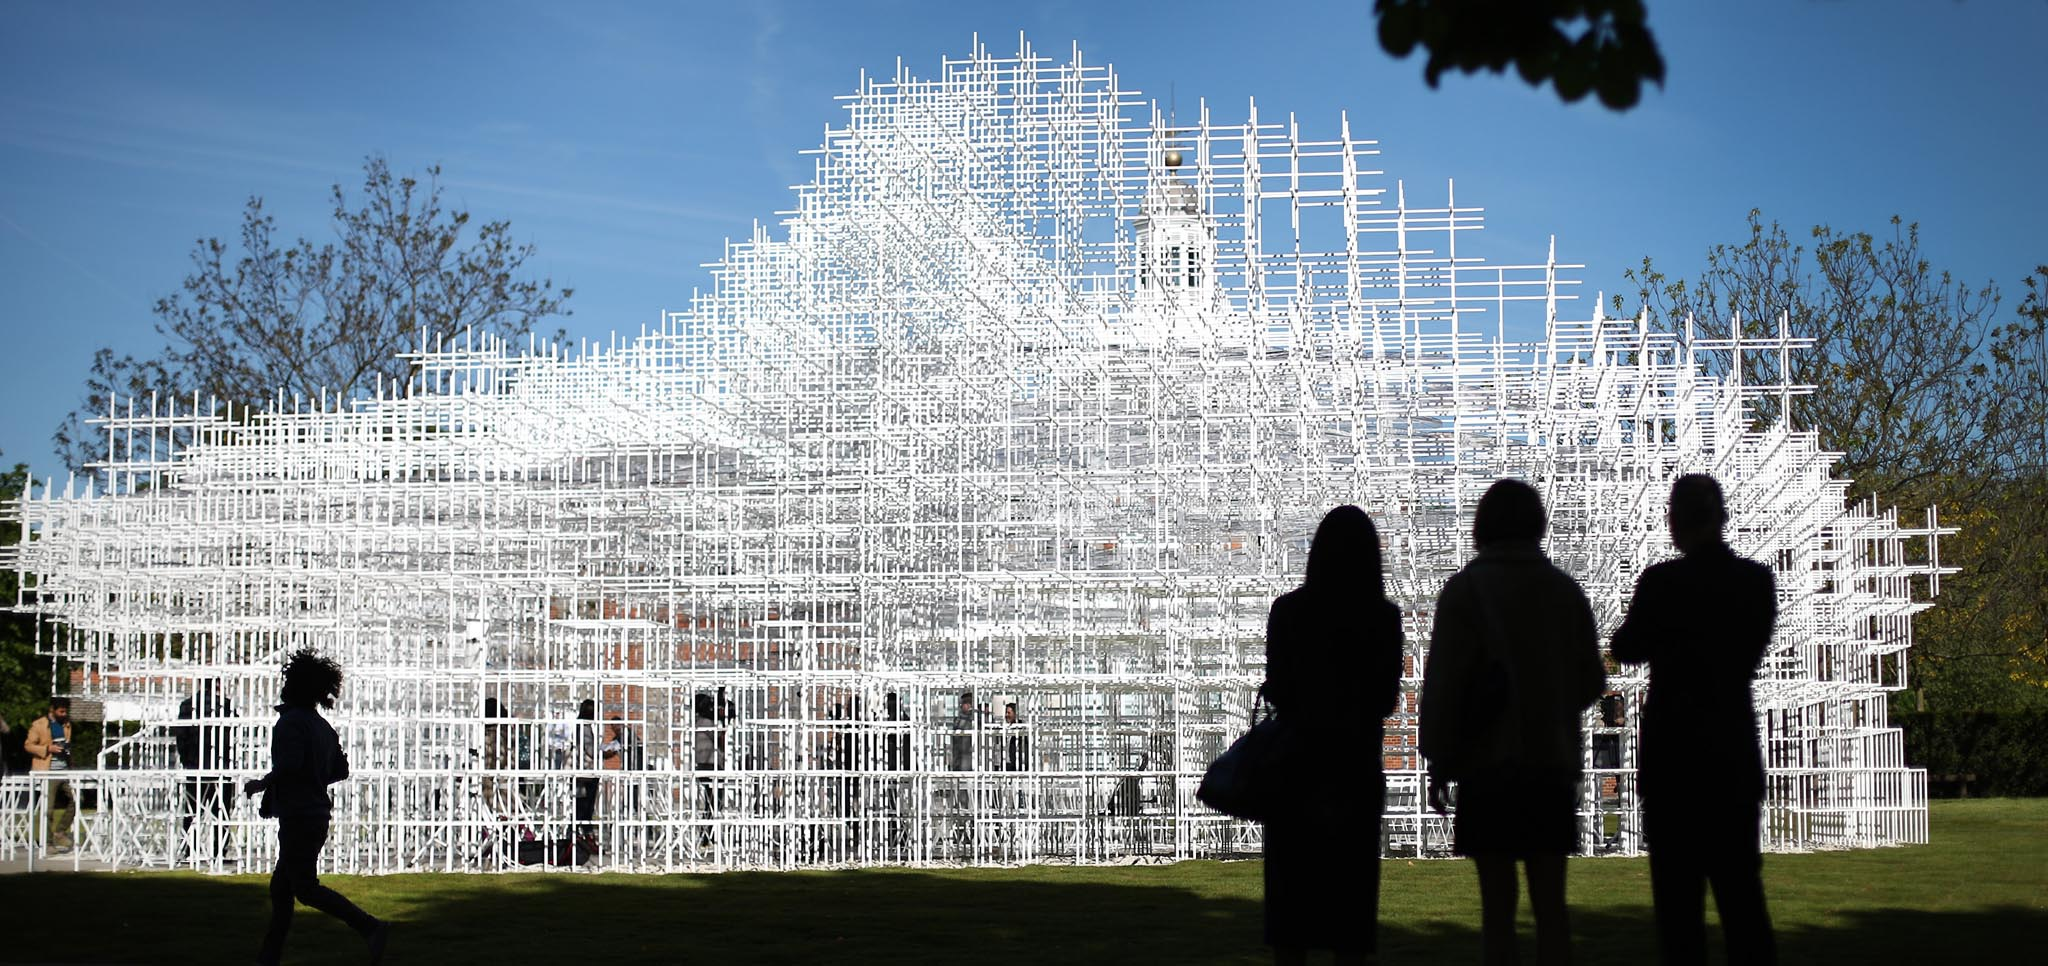 LONDON, ENGLAND - JUNE 04:  Visitors look at the Serpentine Gallery Pavilion on June 4, 2013 in London, England. Designed by Japanese architect Sou Fujimoto, it occupies 357 square-metres of the lawn in front of the gallery. Using a latticed structure of 20 mm steel poles with a cafe sited inside, visitors are encouraged to enter and interact with the Pavilion in different ways throughout it's month tenure in London's Kensington Gardens.  (Photo by Peter Macdiarmid/Getty Images)